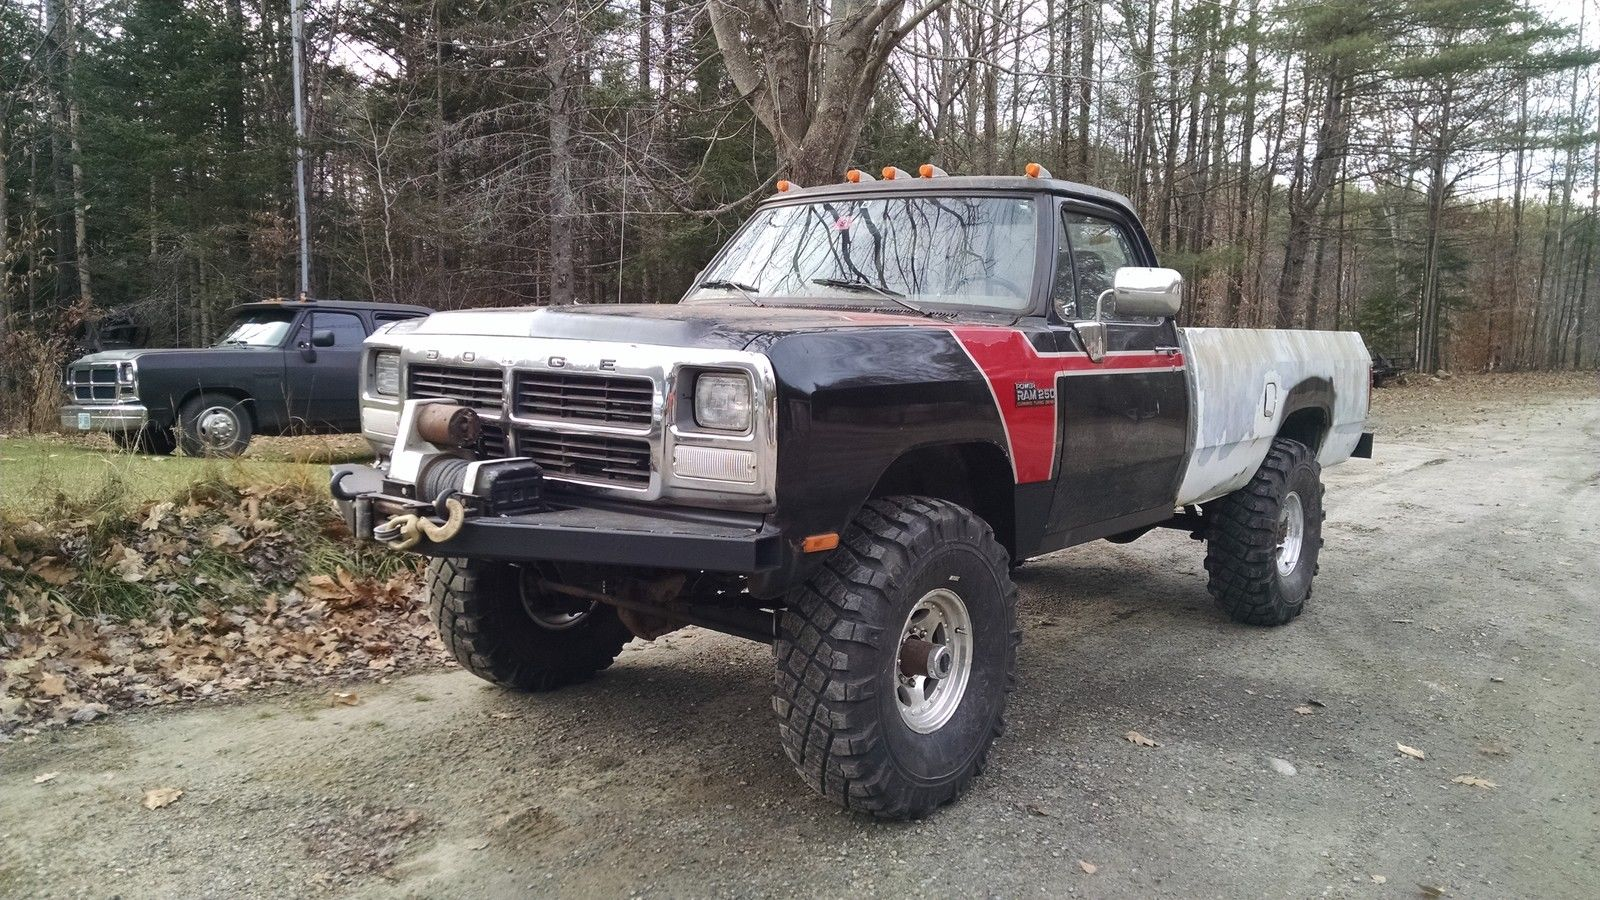 1992 Dodge W250 Cummins Diesel Lifted 5 Speed For Sale In Canaan New Hampshire United States For Sale Photos Technical Specifications Description